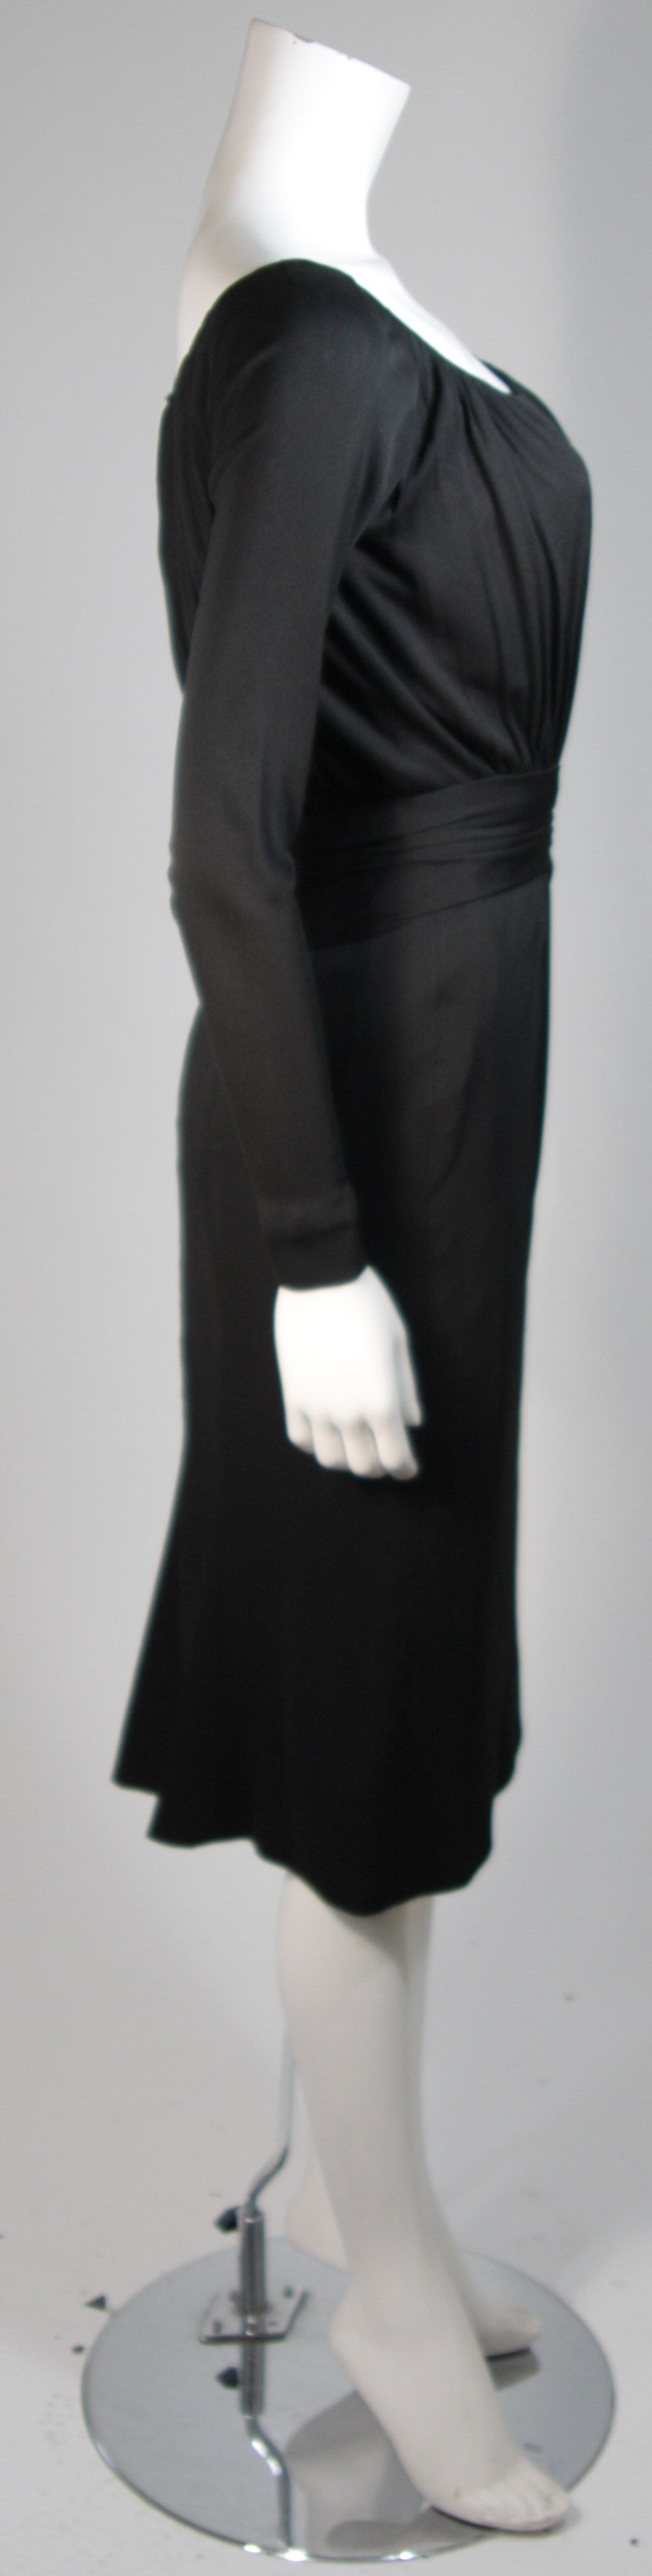 Ceil Chapman Black Silk Crepe Cocktail Dress with Gathers Size 4-6 For Sale 2